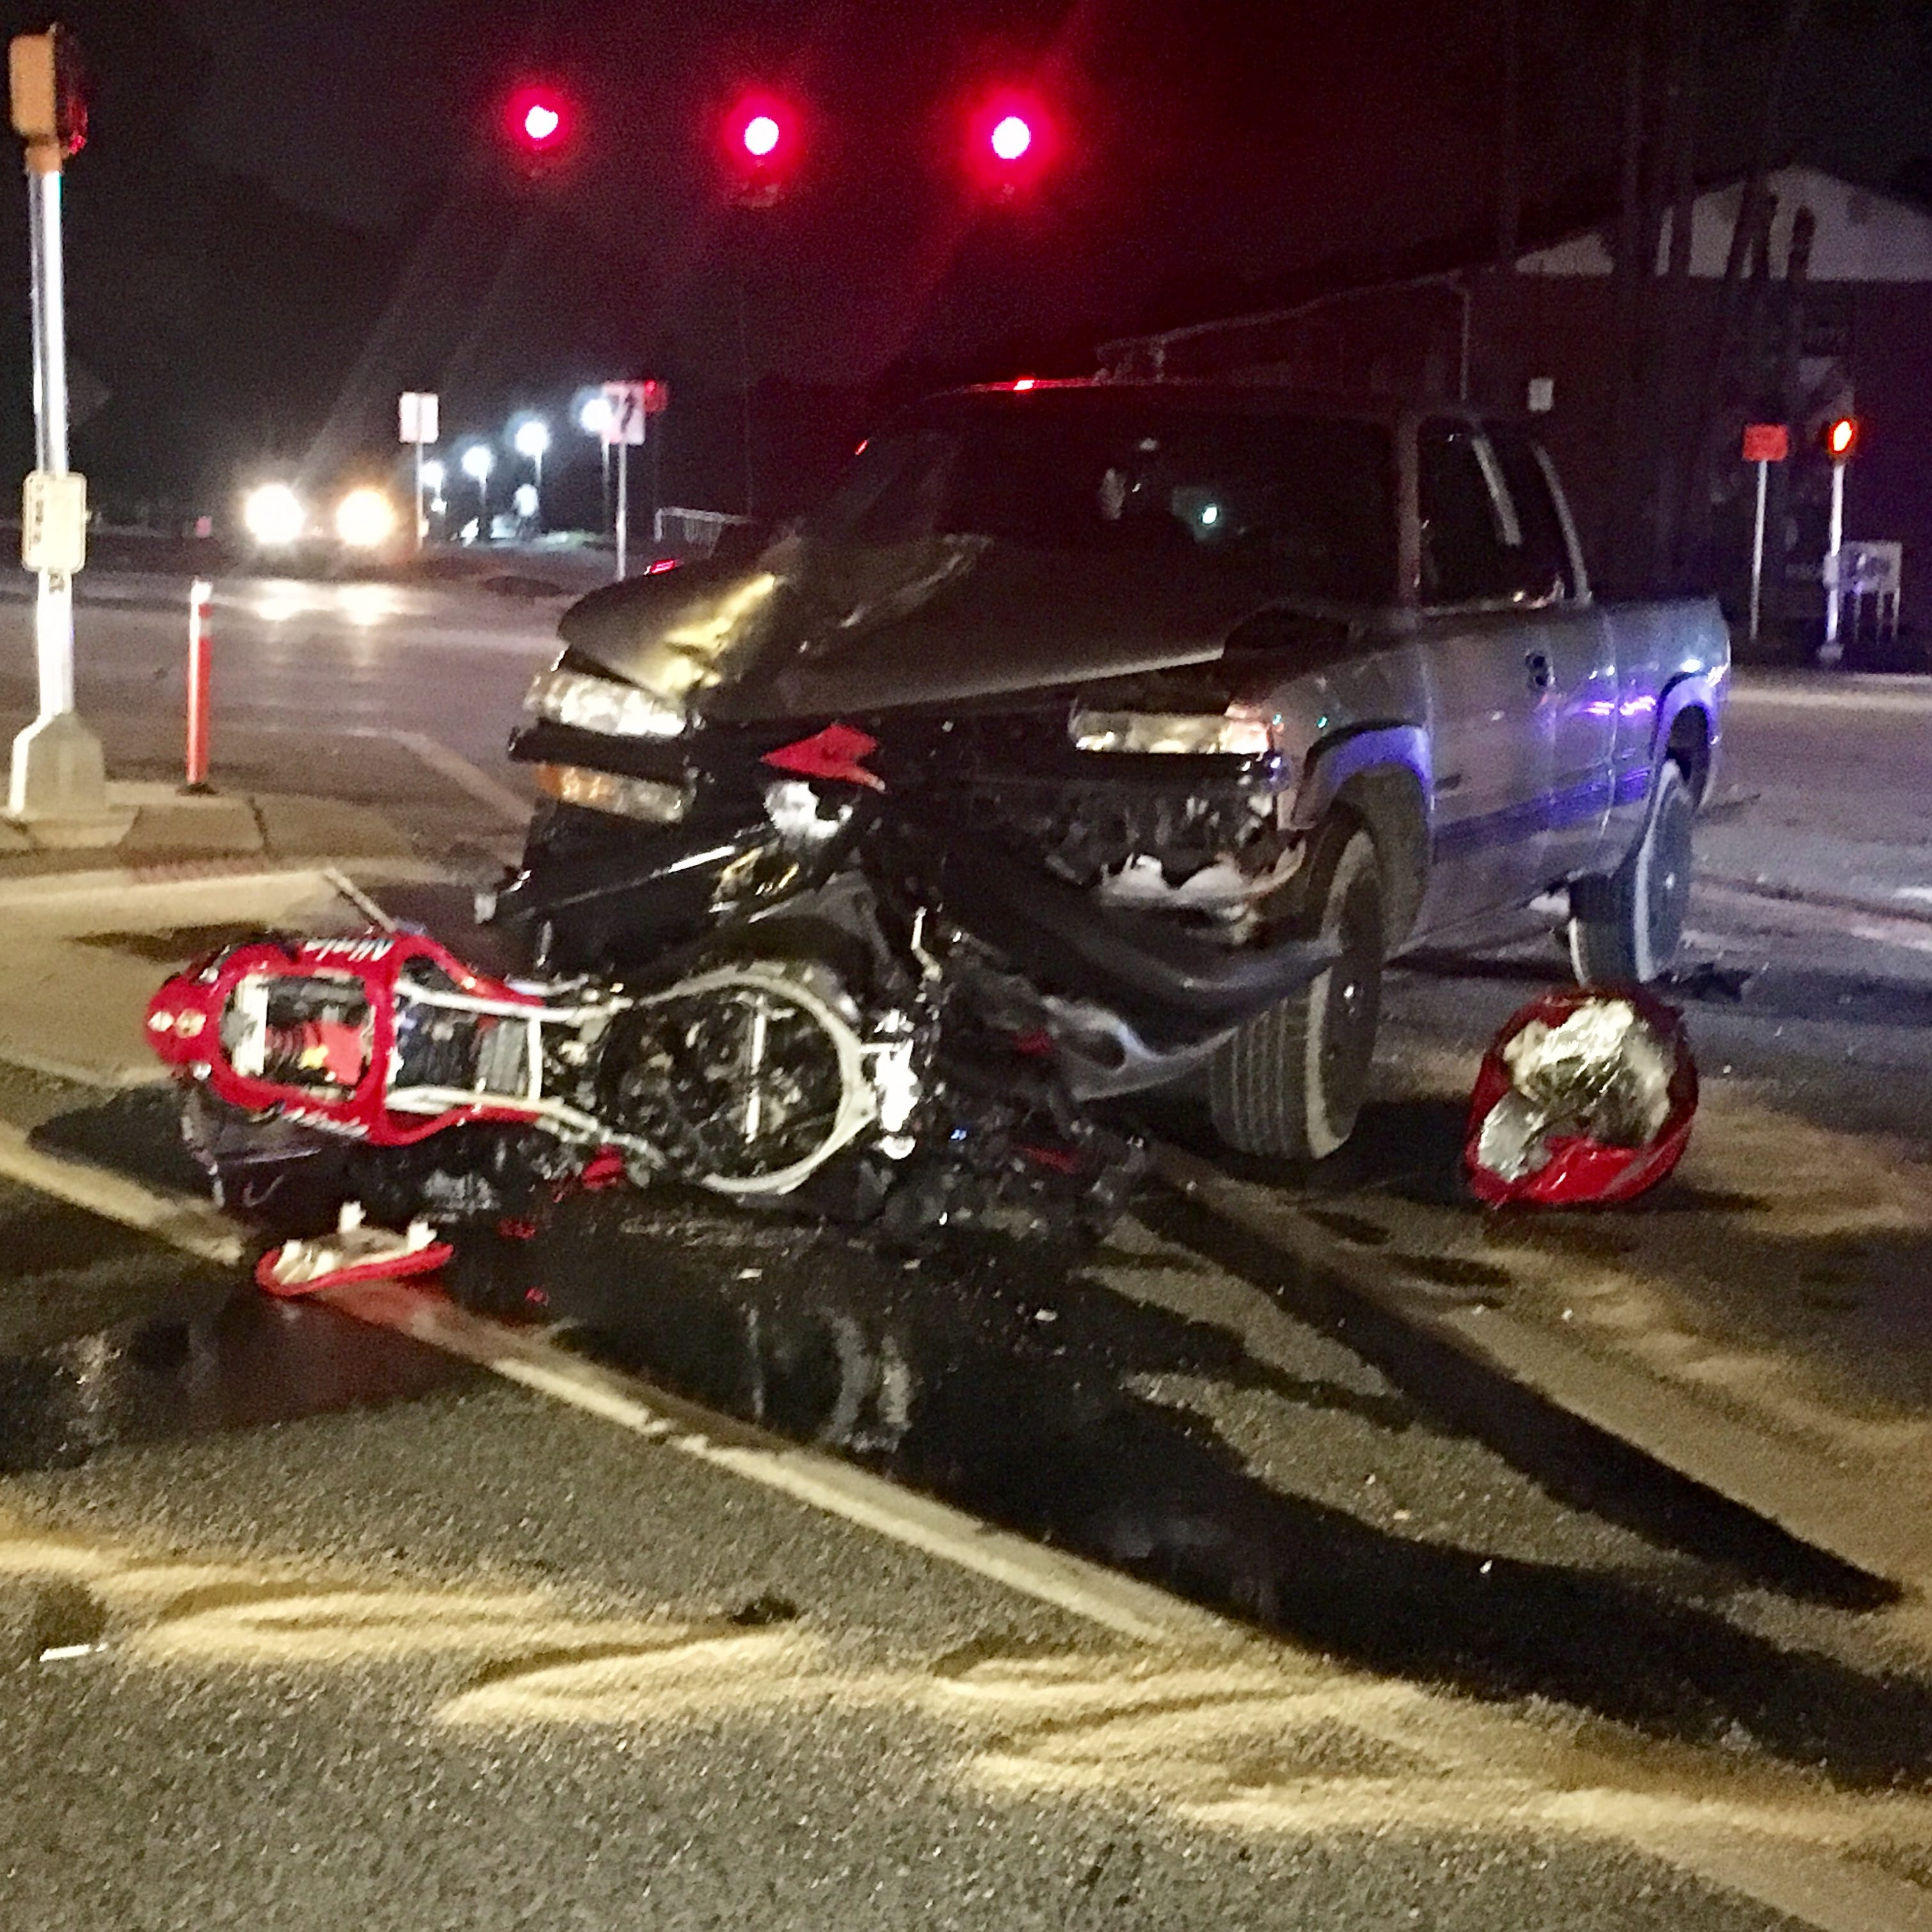 Motorcycle collision closes Del. 273 near New Castle